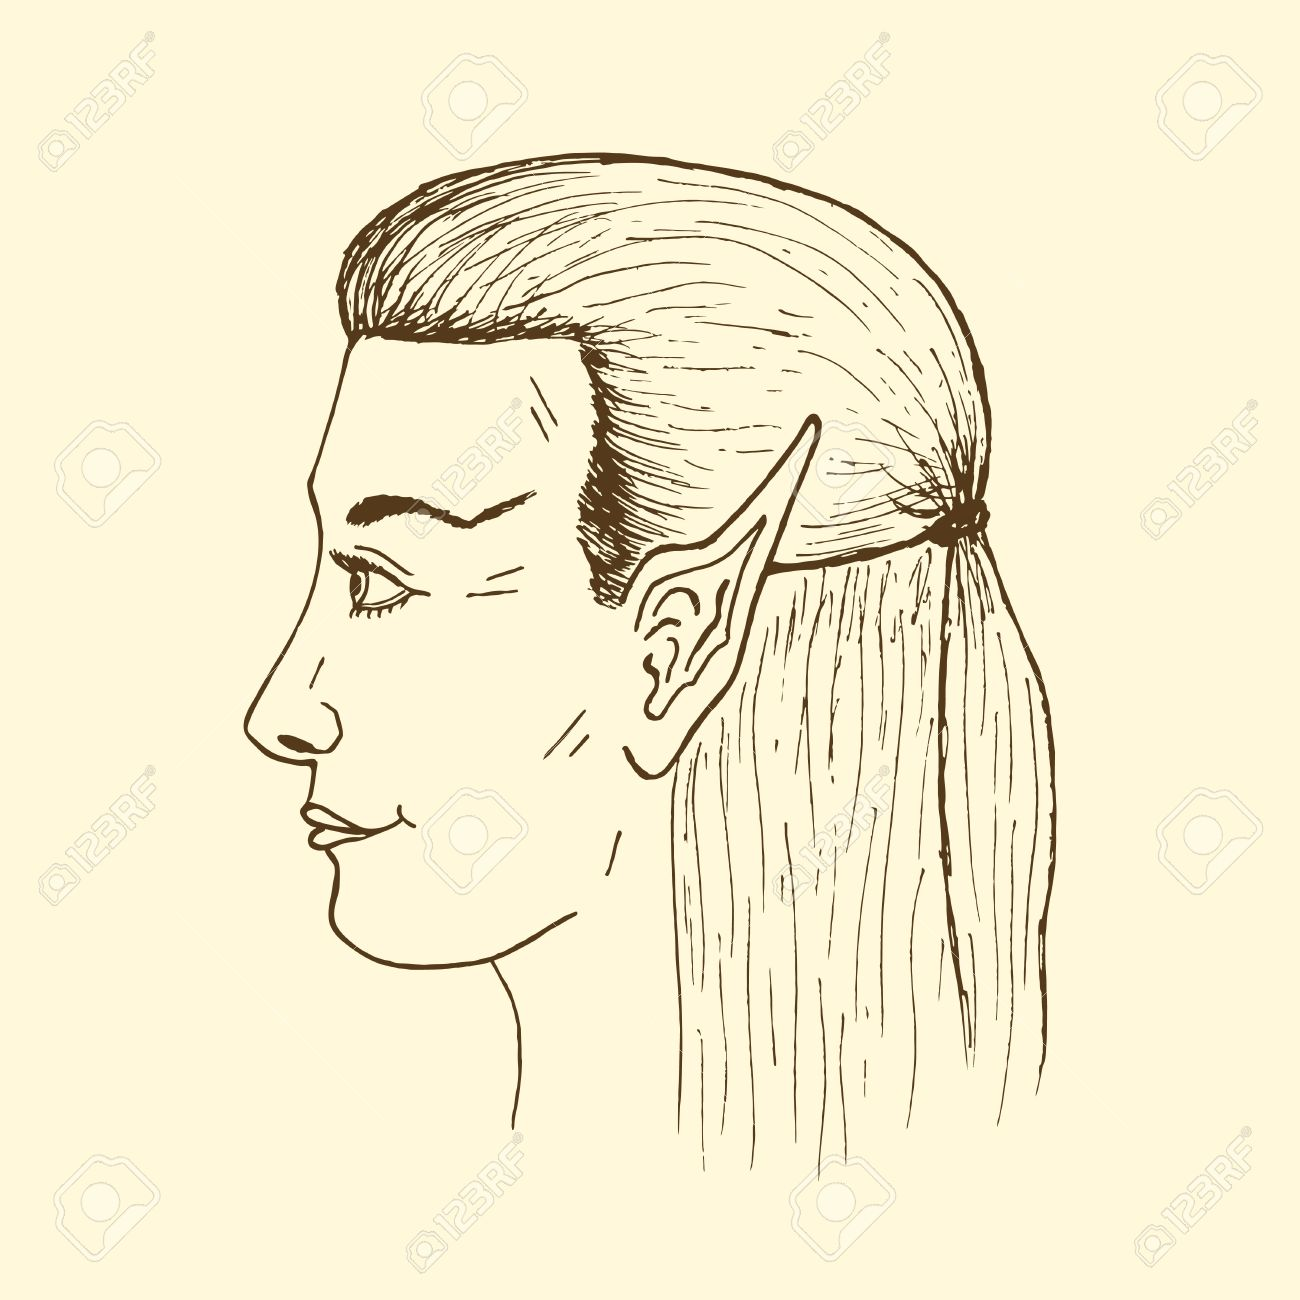 1300x1300 Profile Of A Young Elf. Vector Hand Drawing Elf's Face. Royalty